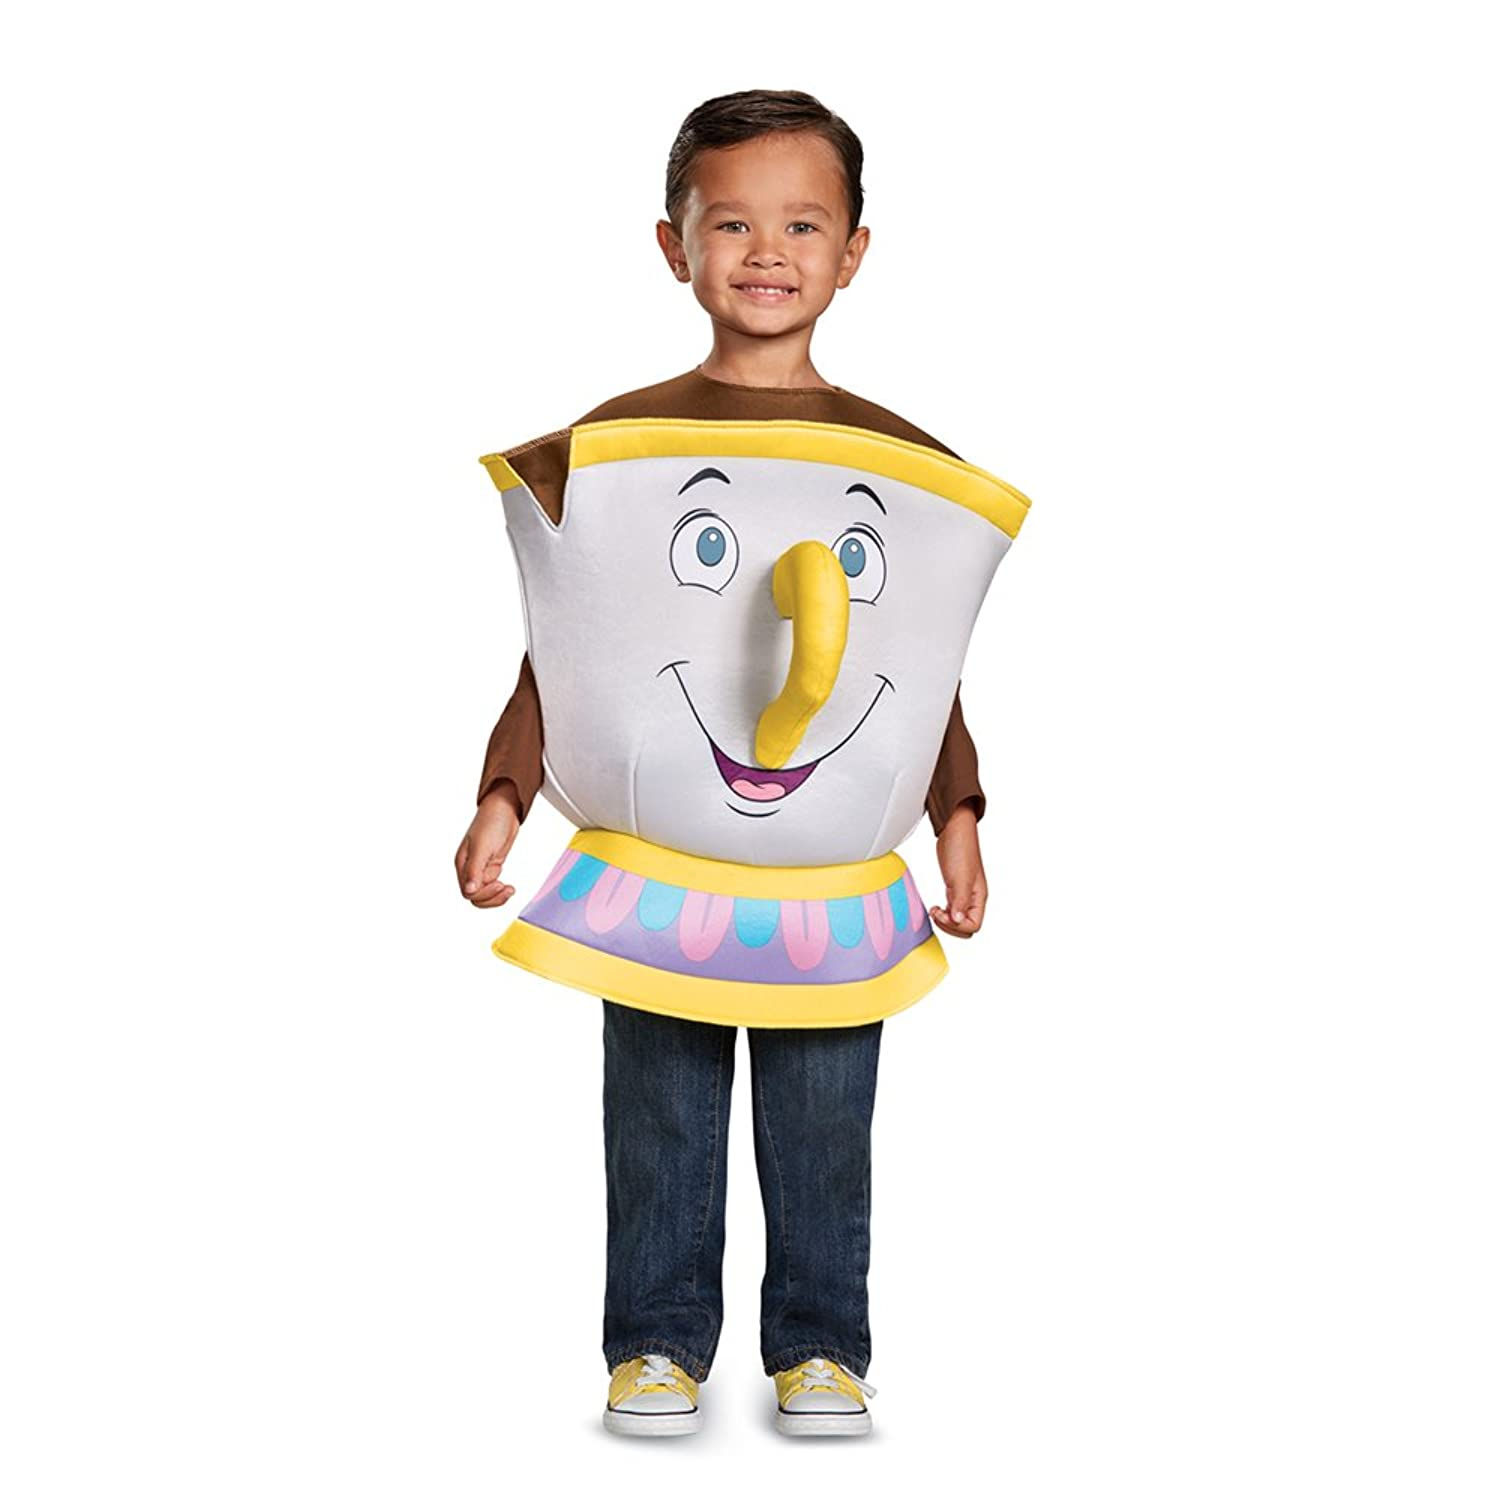 Chip Deluxe Toddler Costume Beauty and the Beast